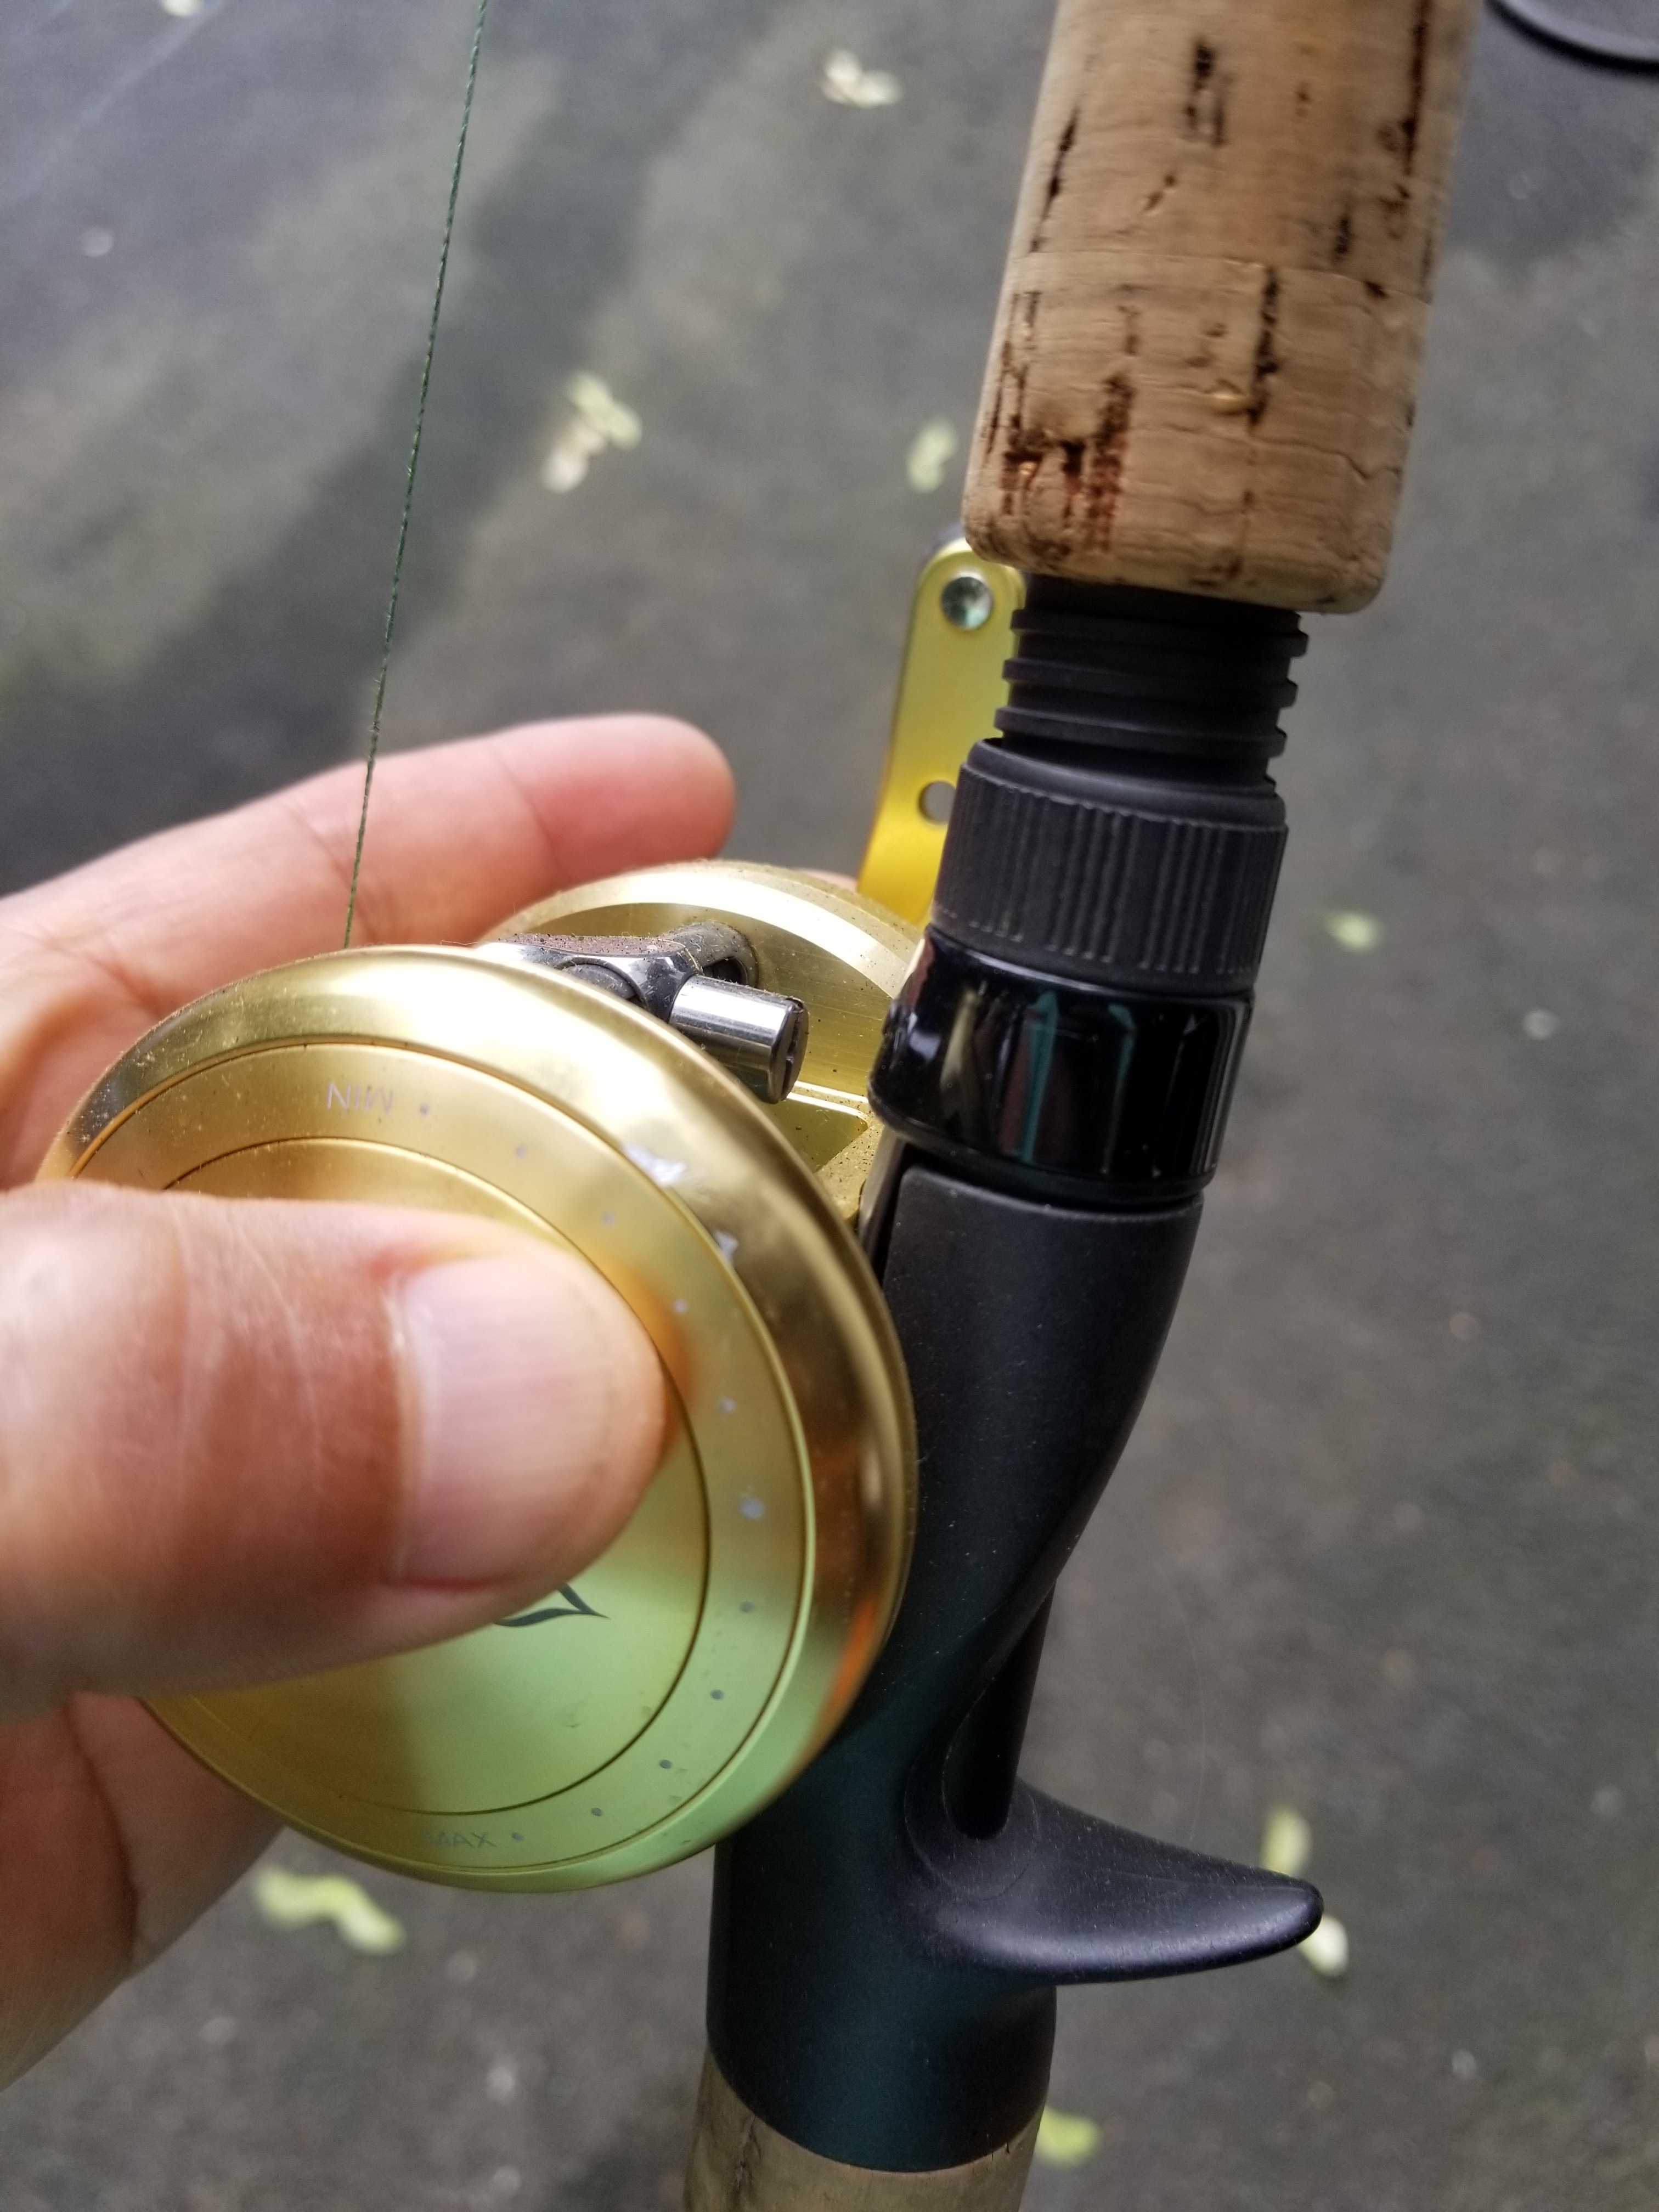 644b9897301 GL3/daiwa Luna combo - General Buy/Sell/Trade Forum - SurfTalk